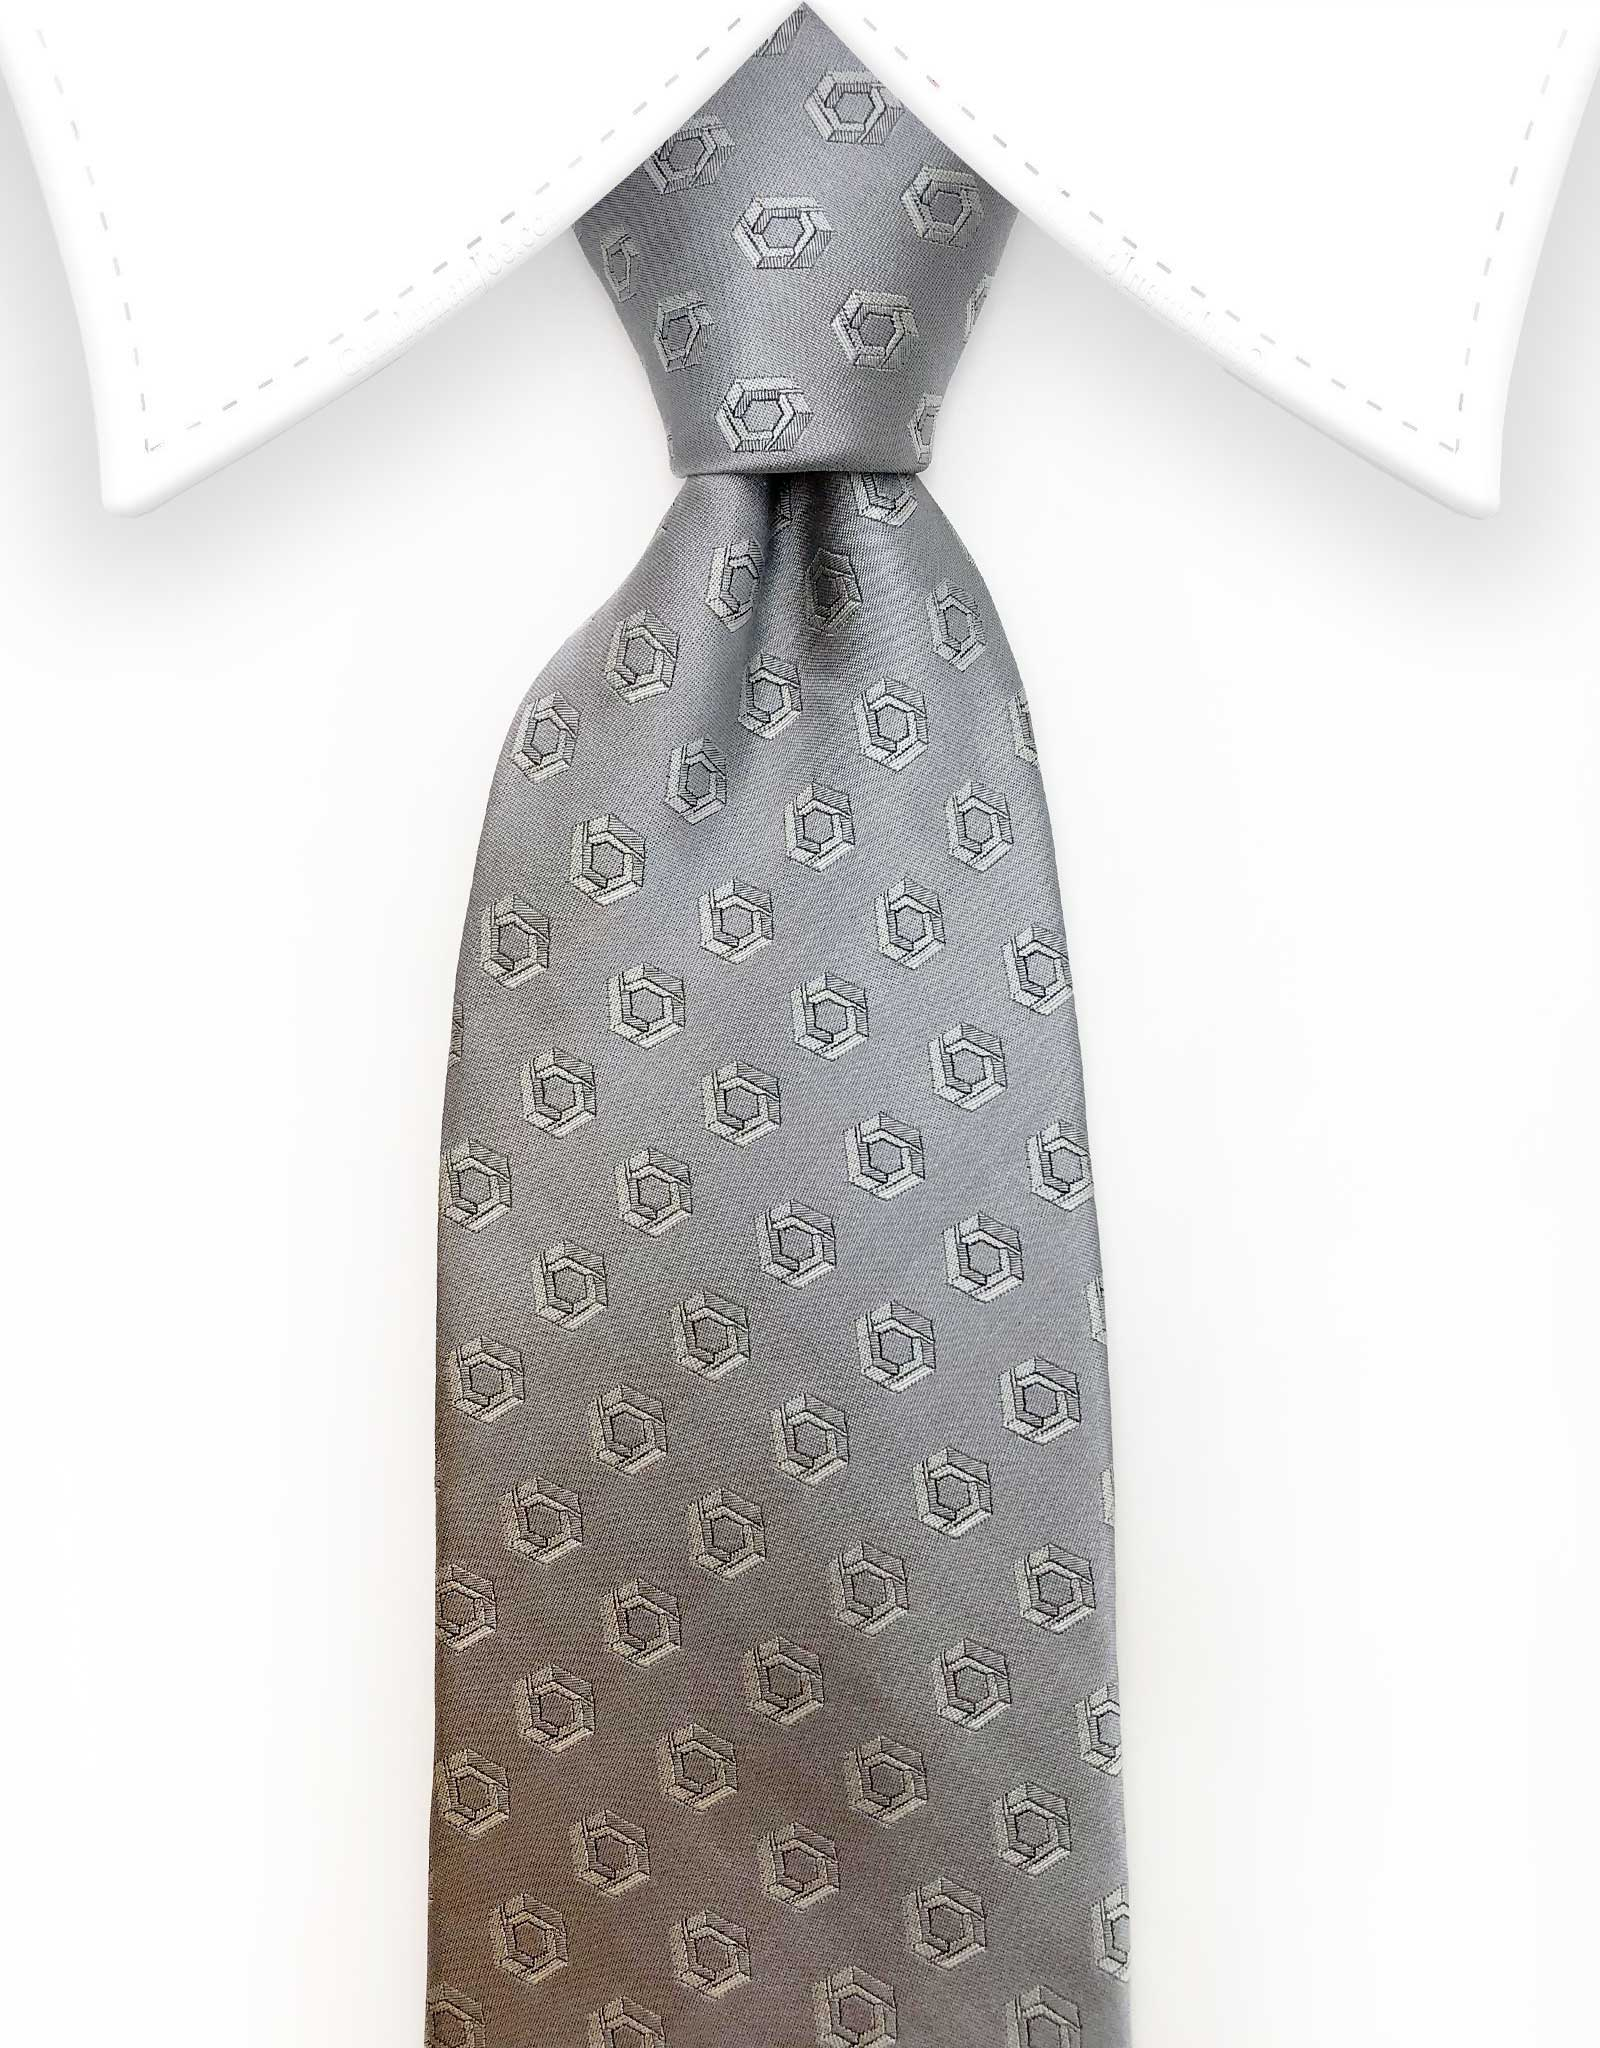 silver tie with design